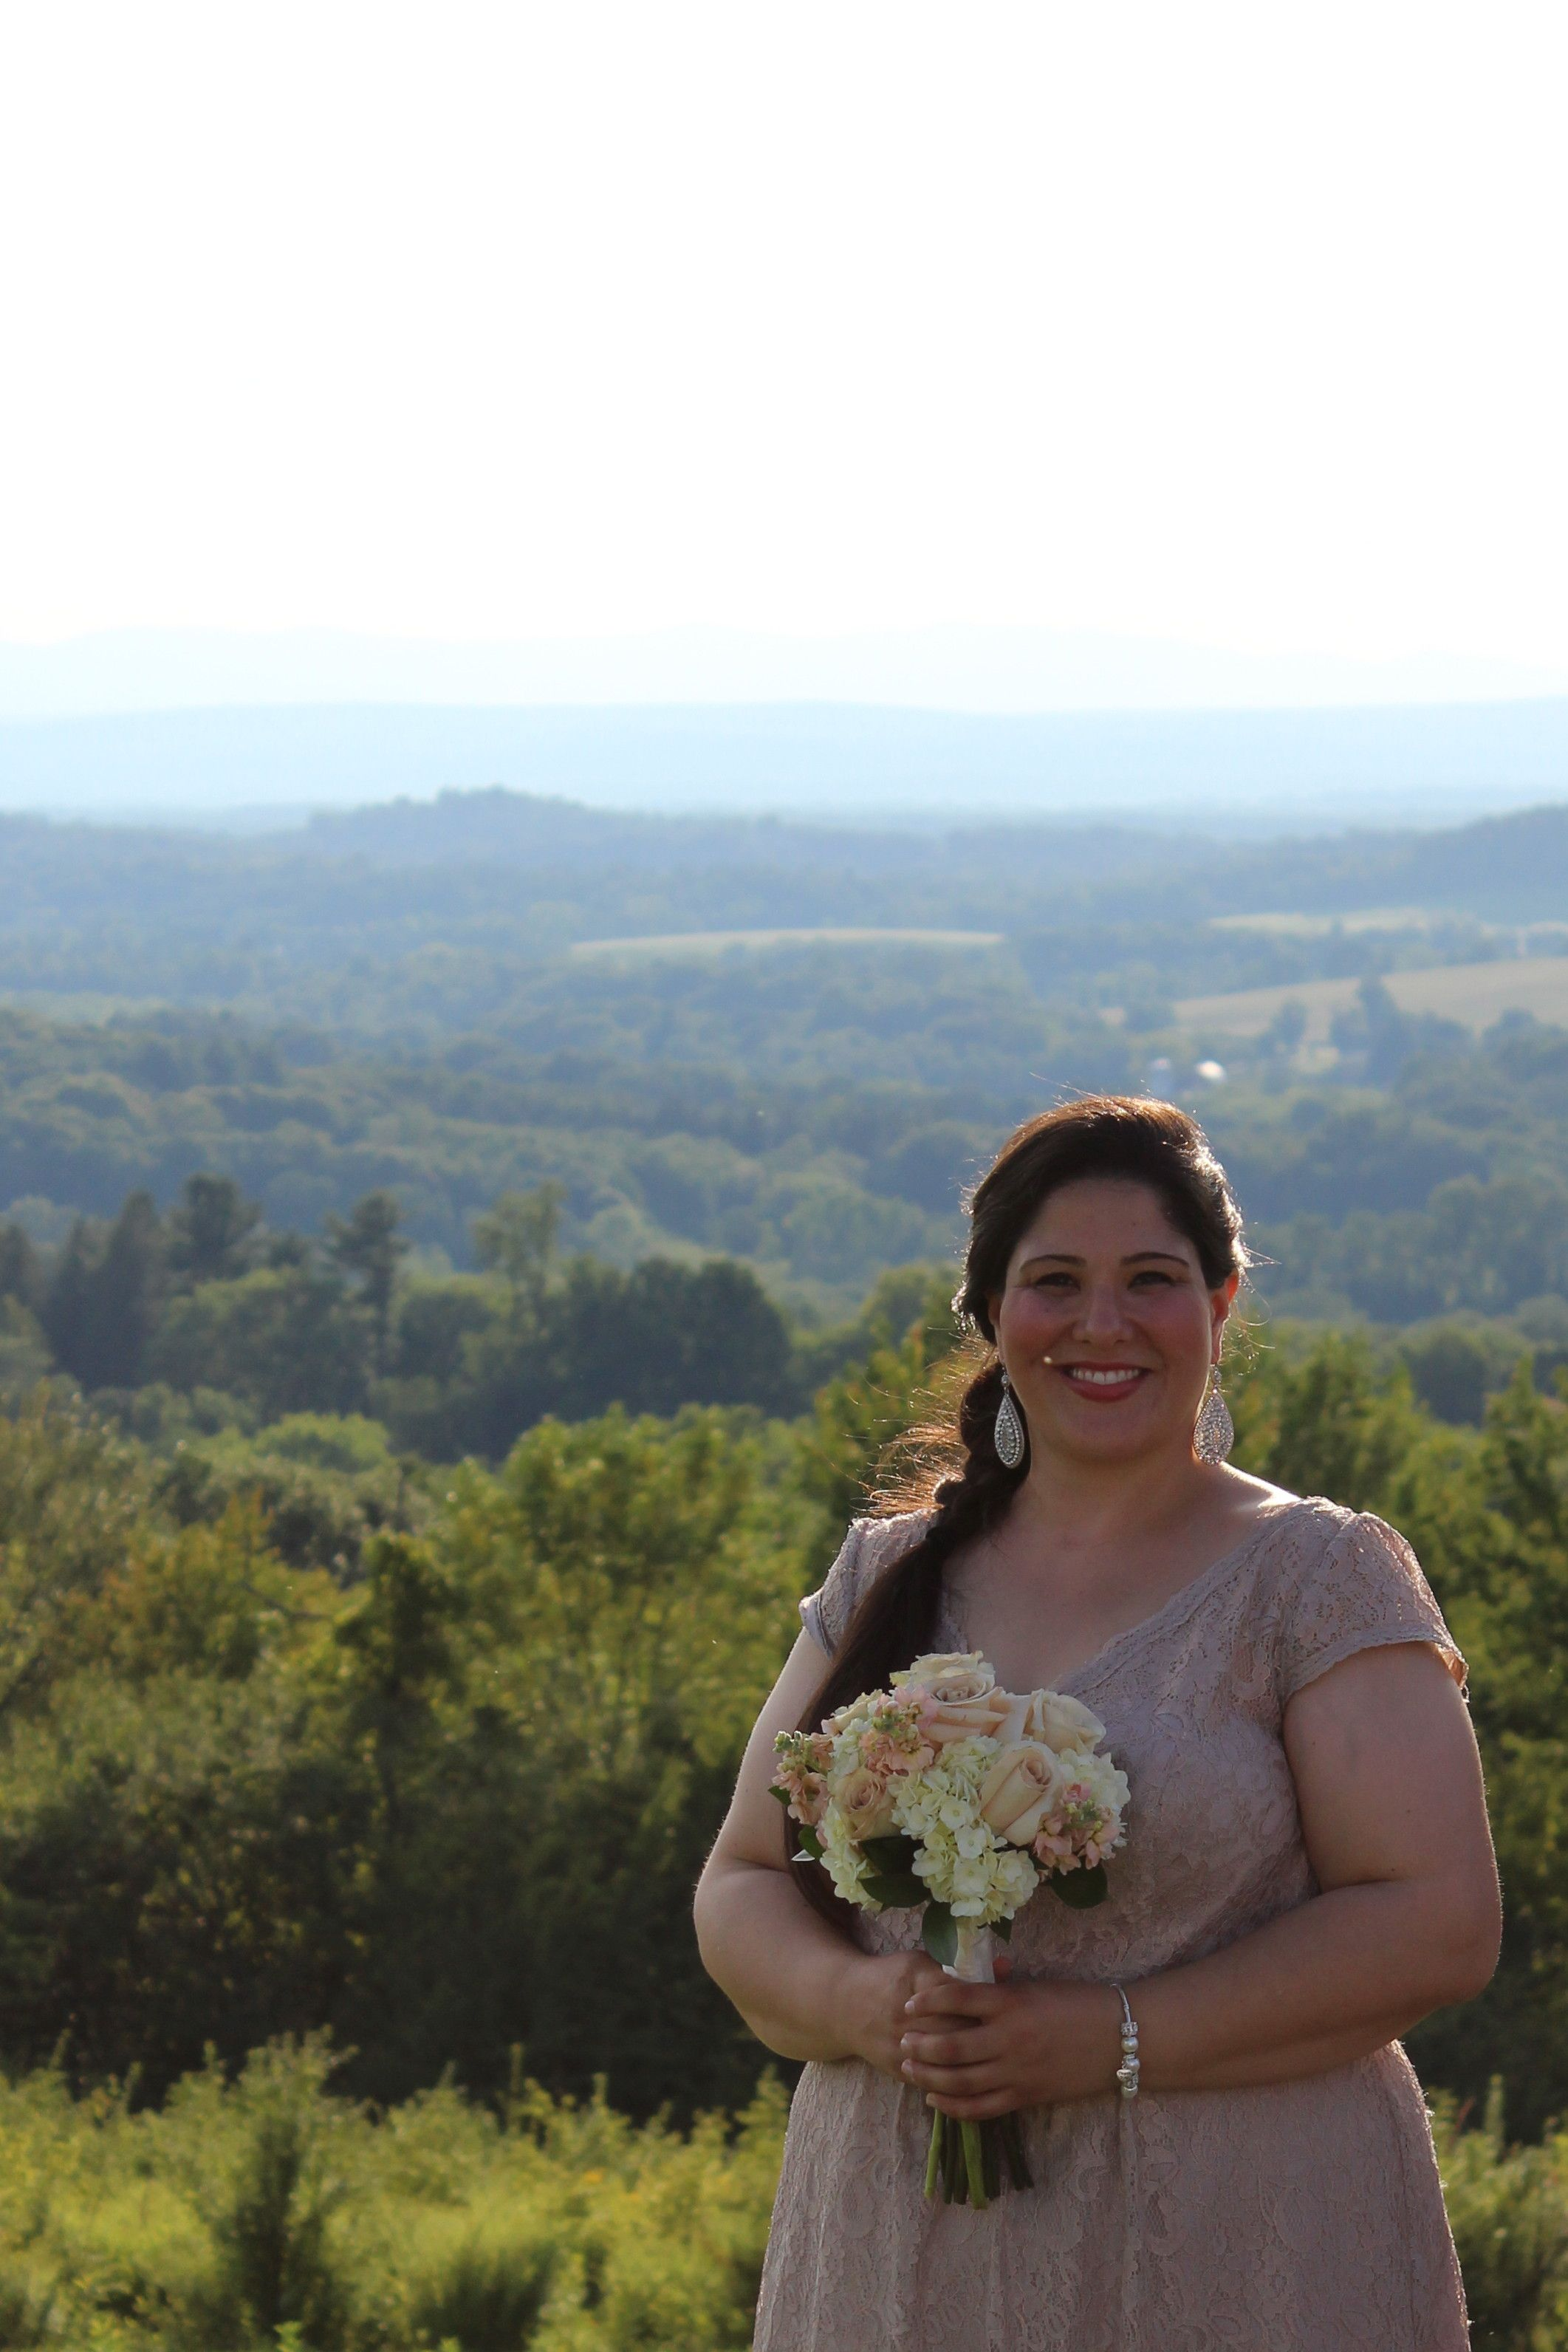 Little Brook Farm makes the perfect venue for a wedding. The natural background is stunning!